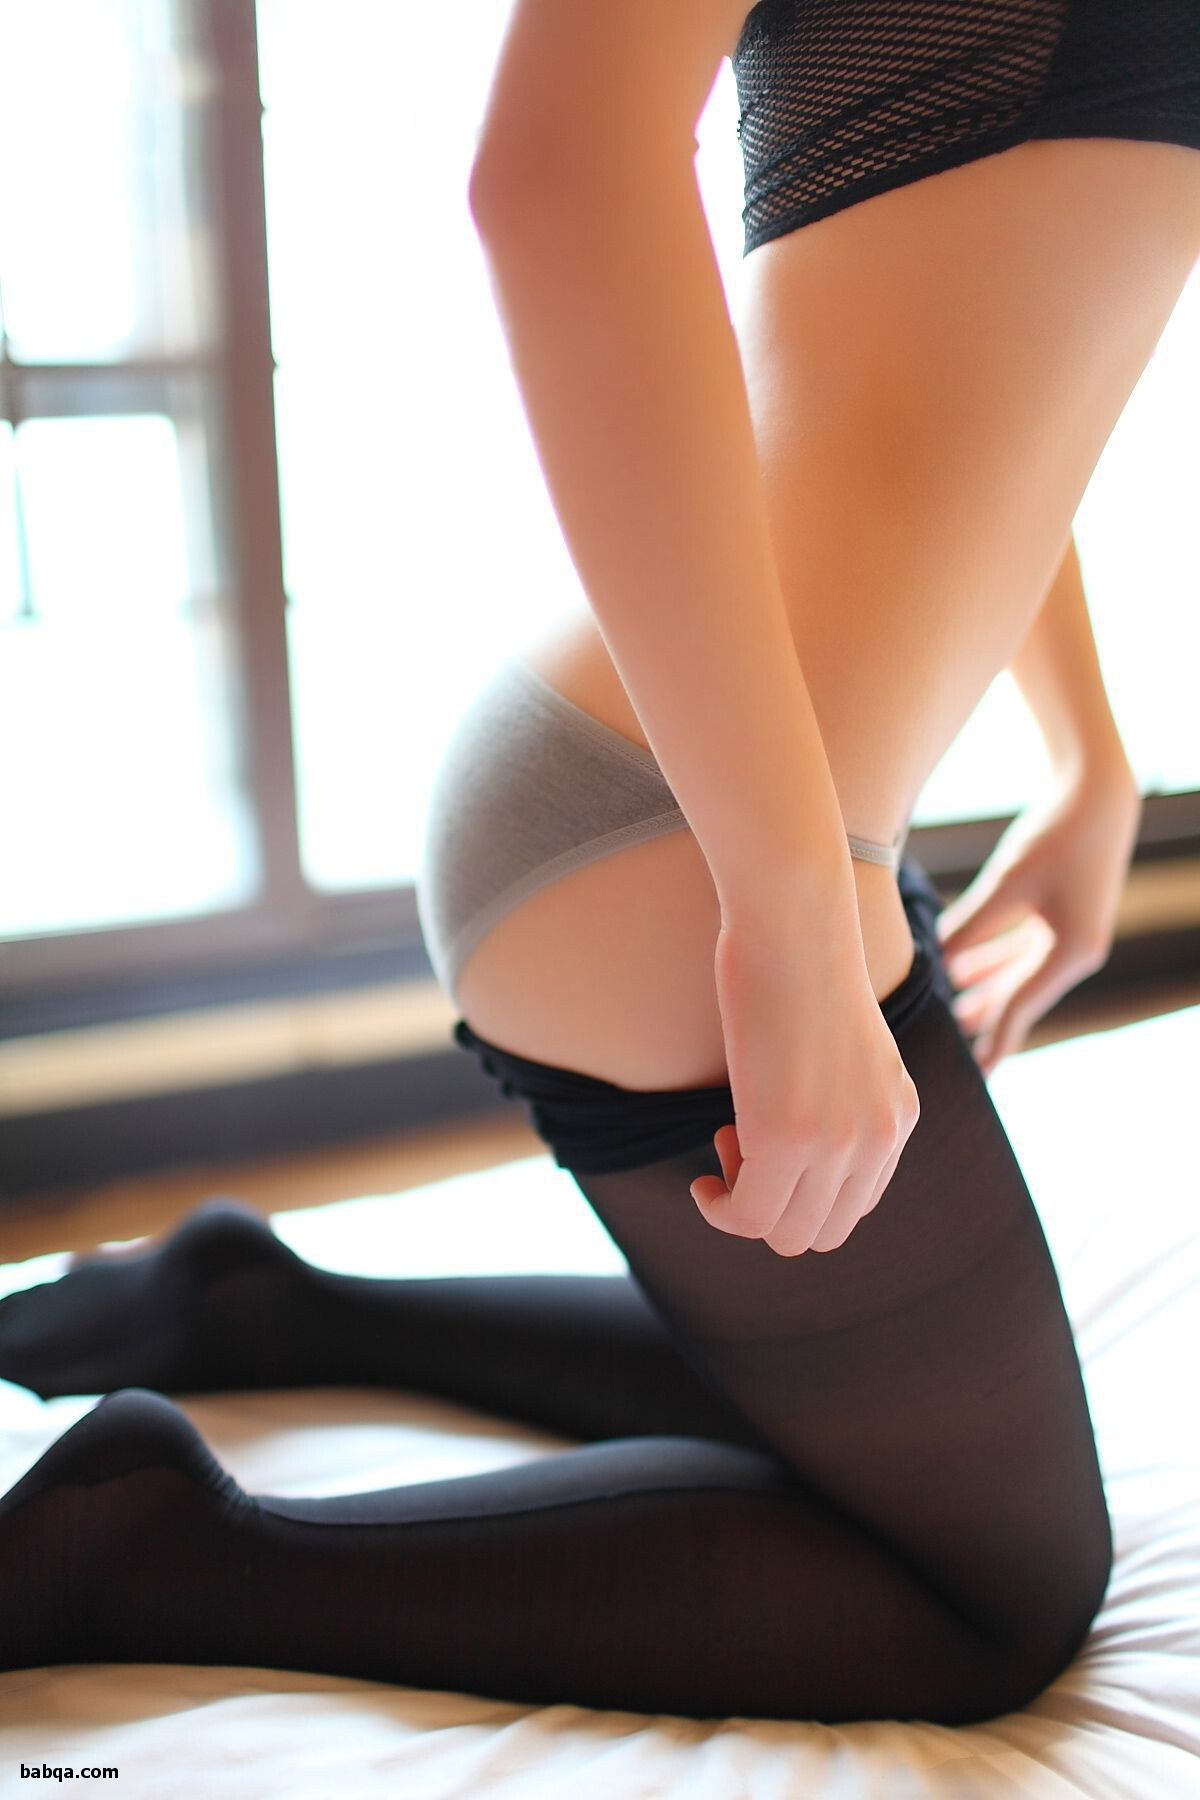 cute girls in stockings and nylon stockings photos